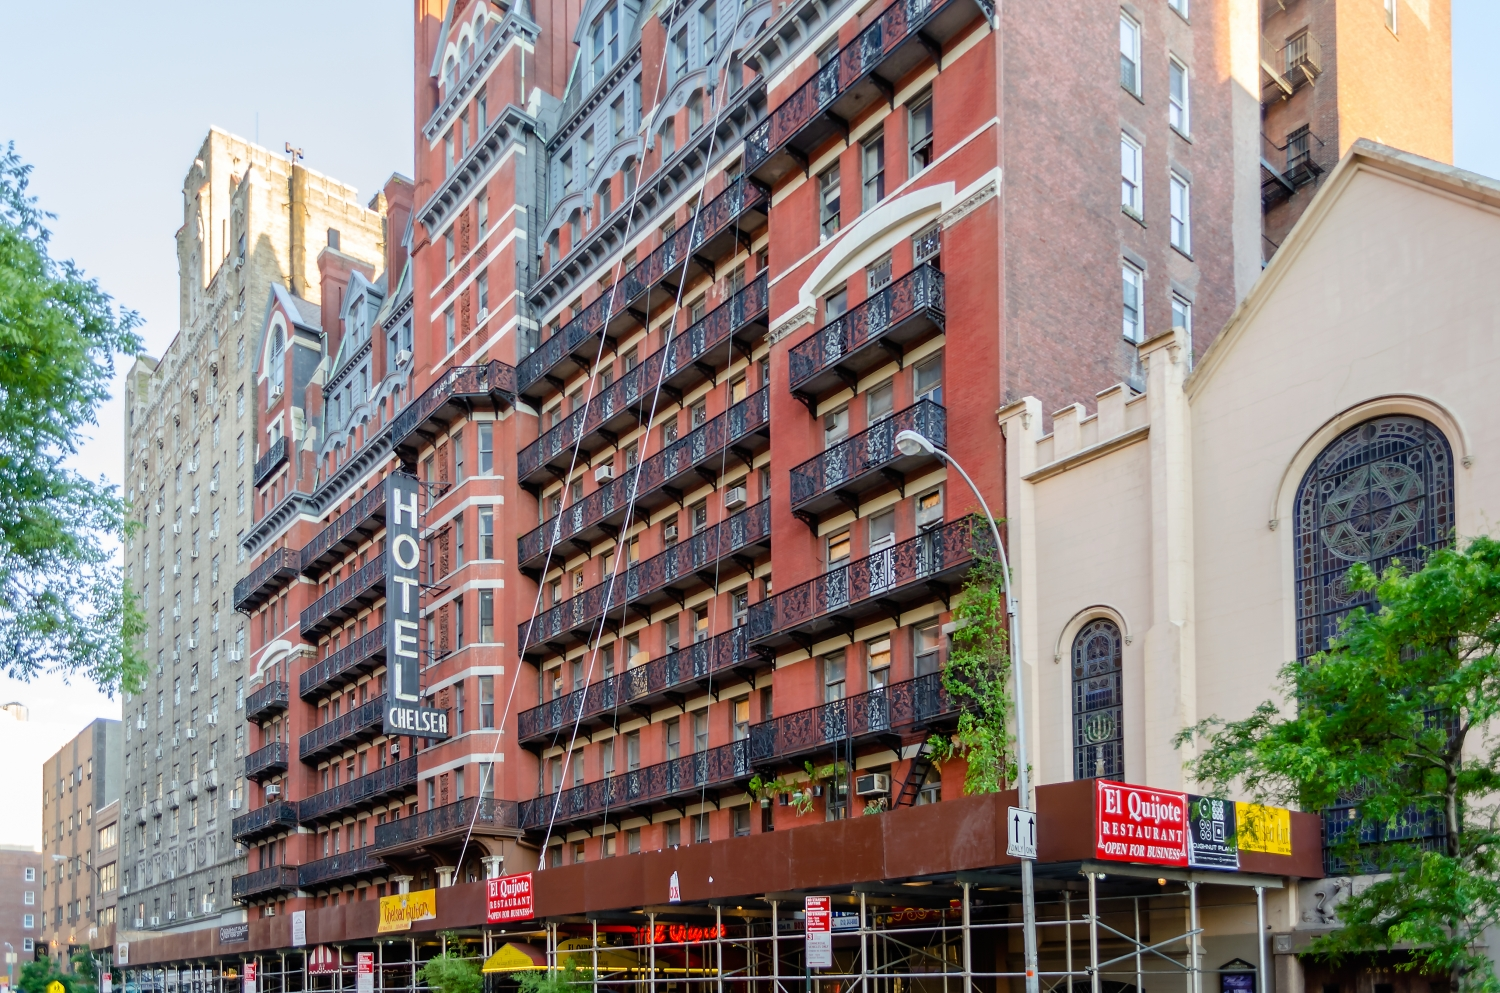 Hotel Chelsea in Midtown Manhattan, New York City